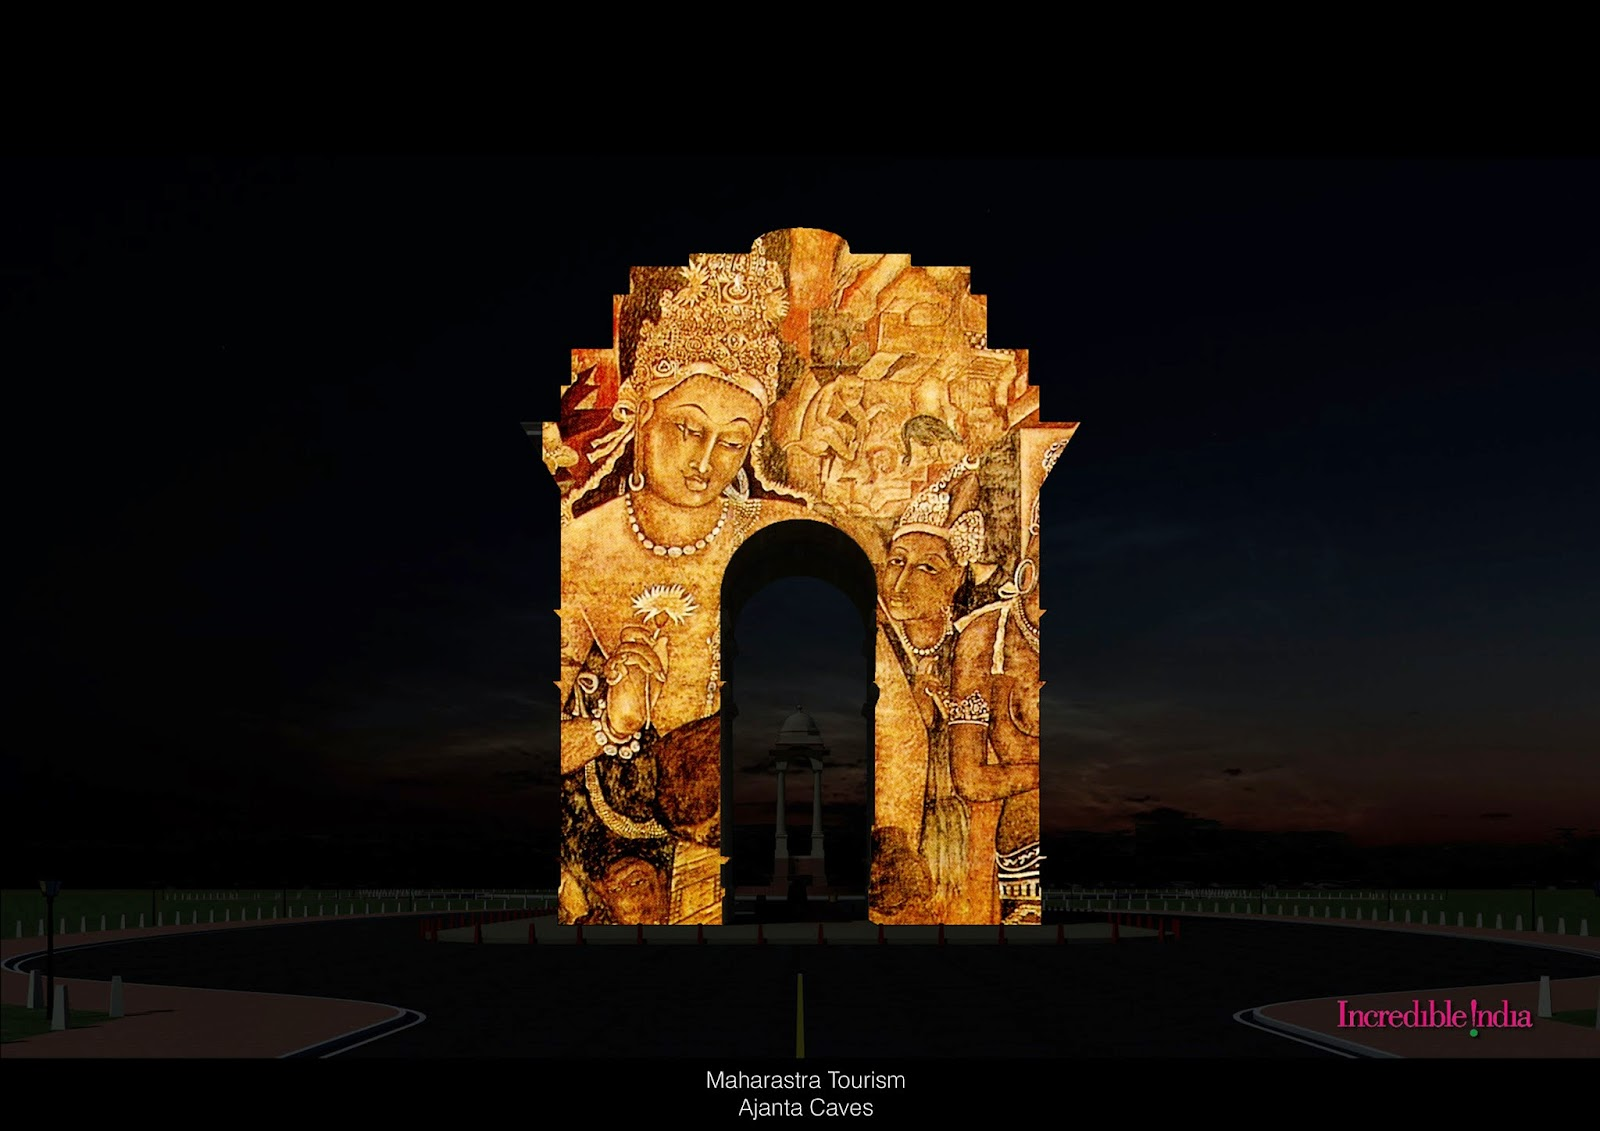 Chandrakanth rajapure 3d projection mapping india gate for Archaeological monuments in india mural paintings